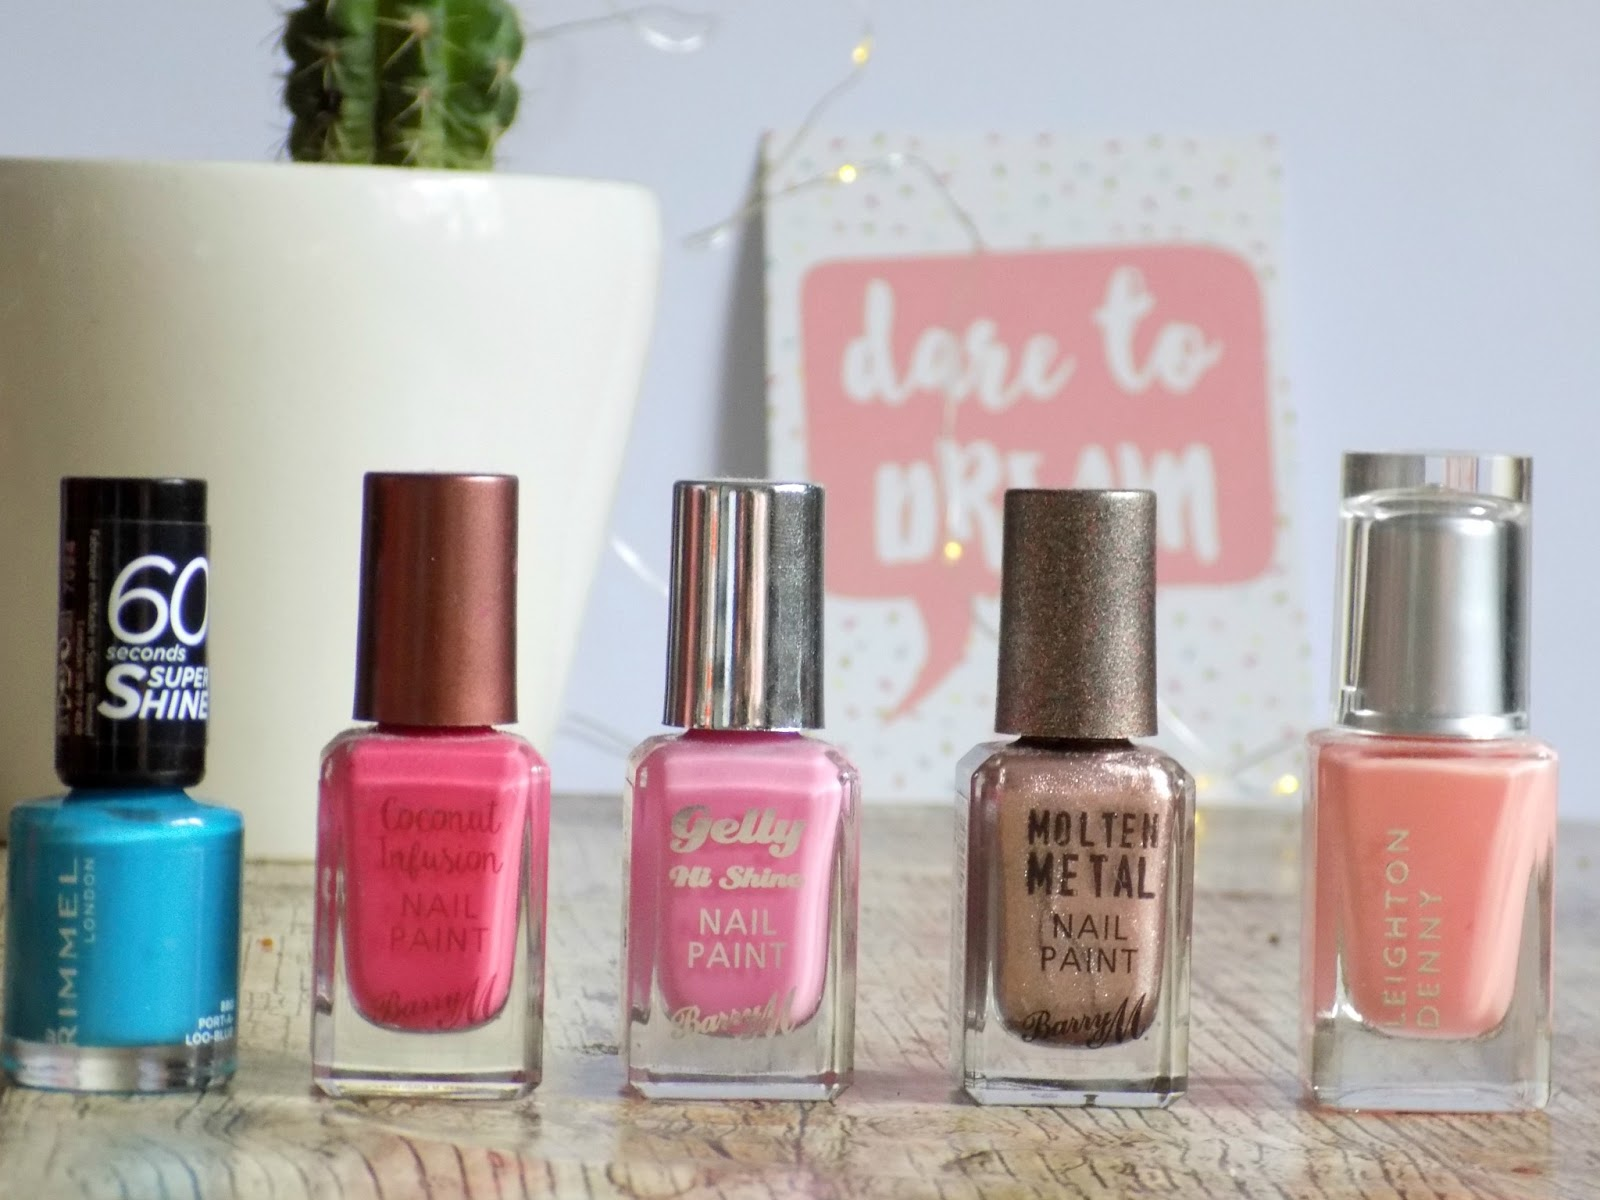 Barry M, Rimmel, Leighton denny